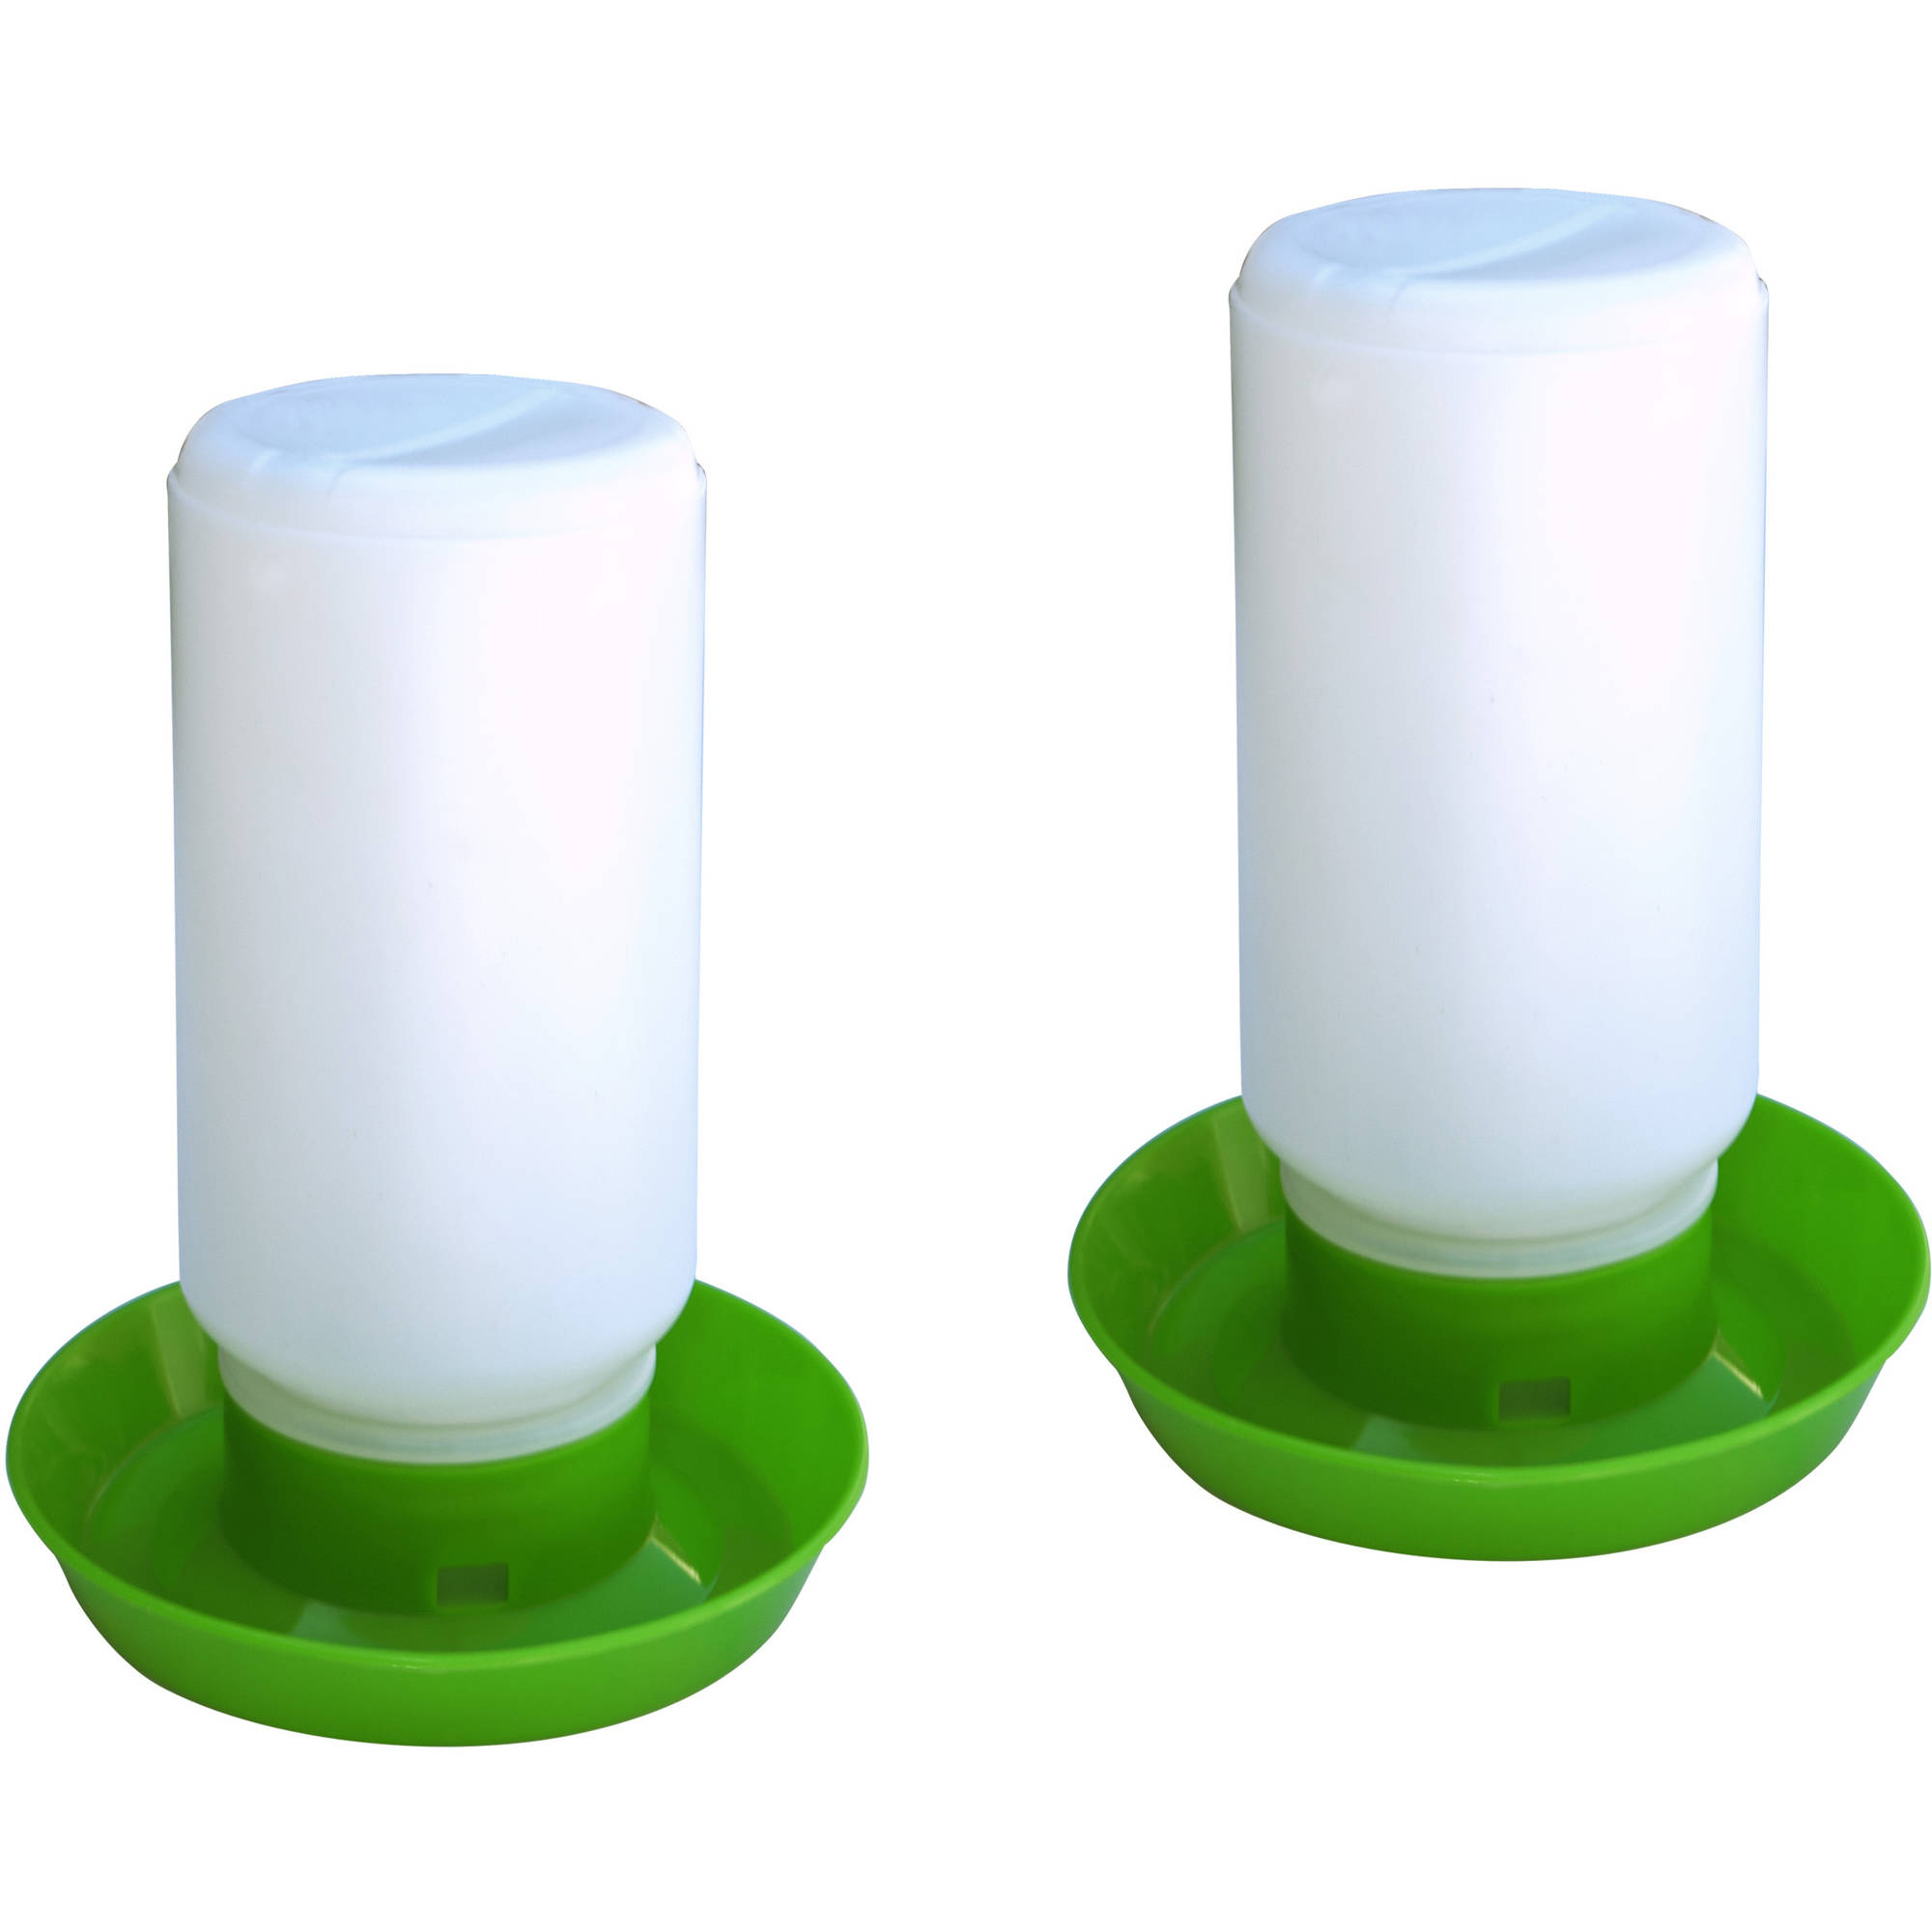 ALEKO 2PDR001 Poultry Water Container, Set of 2, Green and White by ALEKO